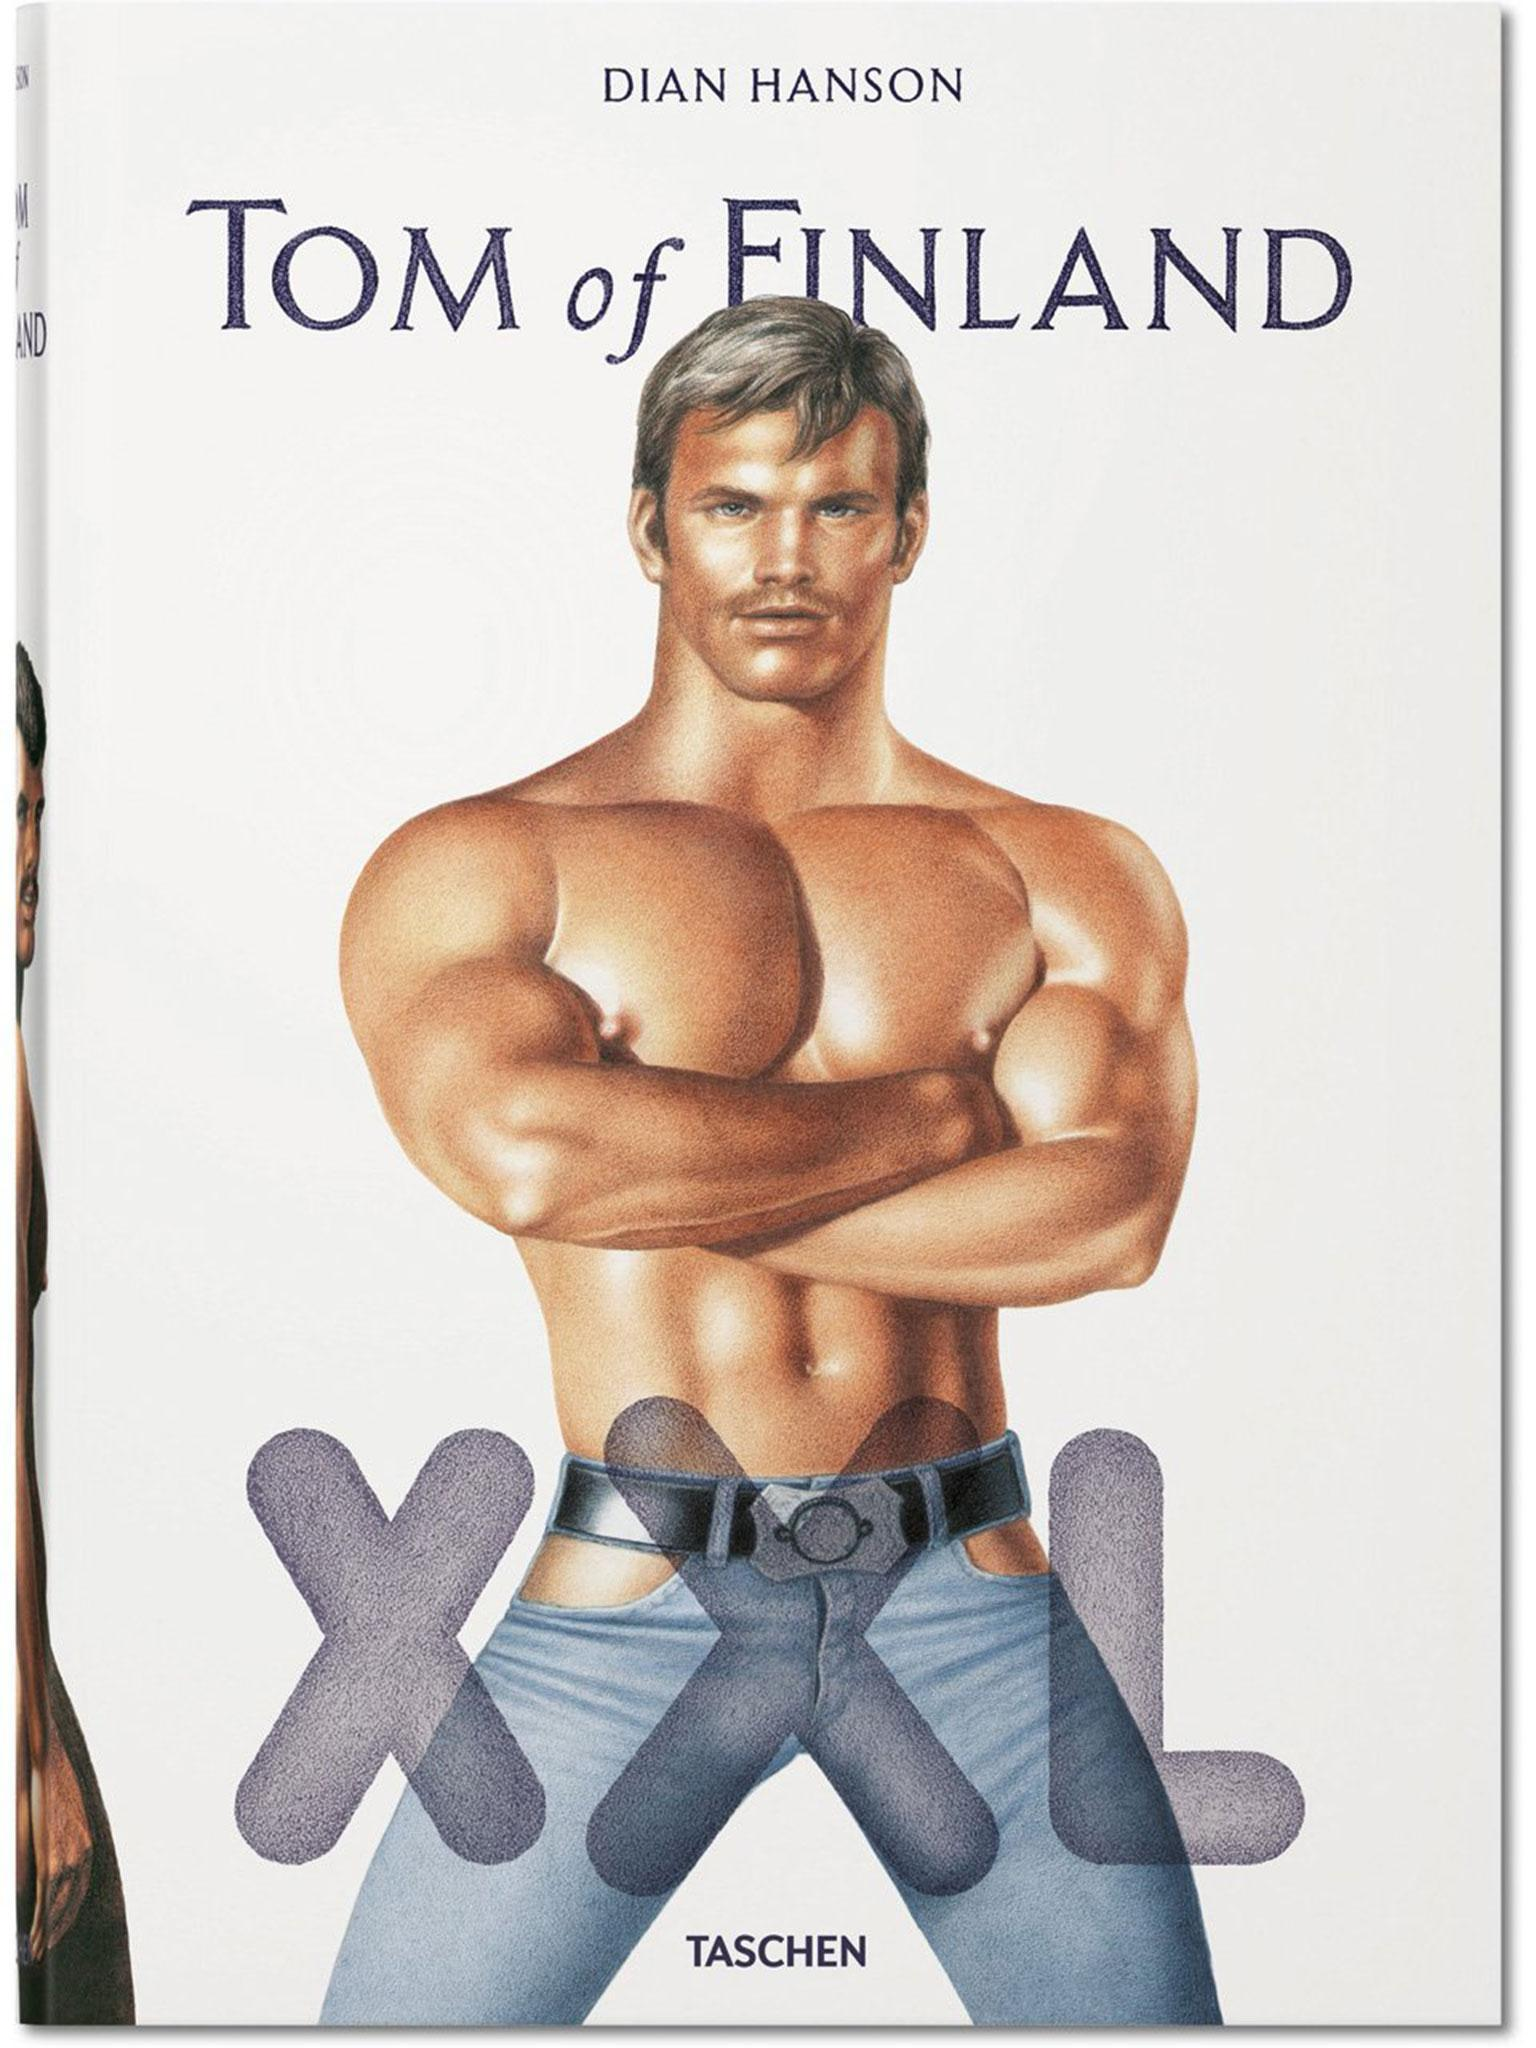 tom of finland: the gay icon who changed pop culture forever | the